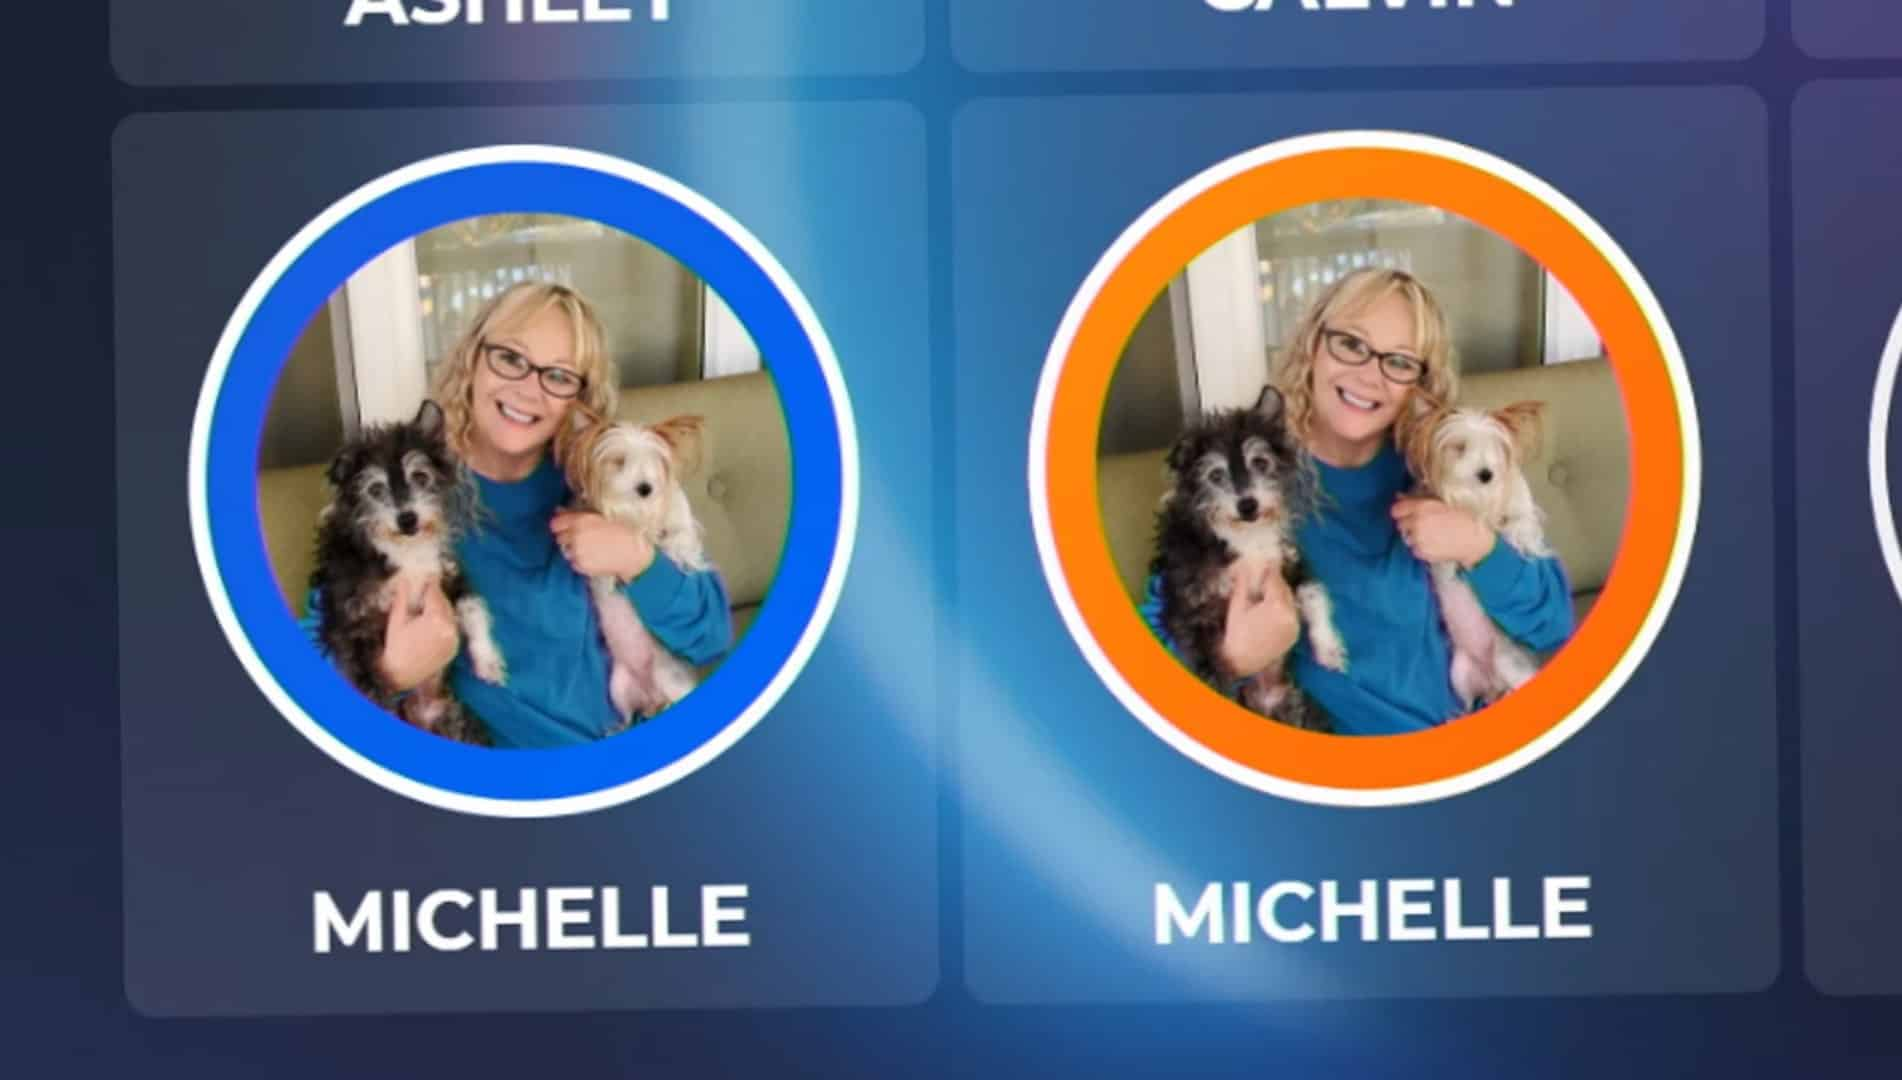 A case of two Michelles